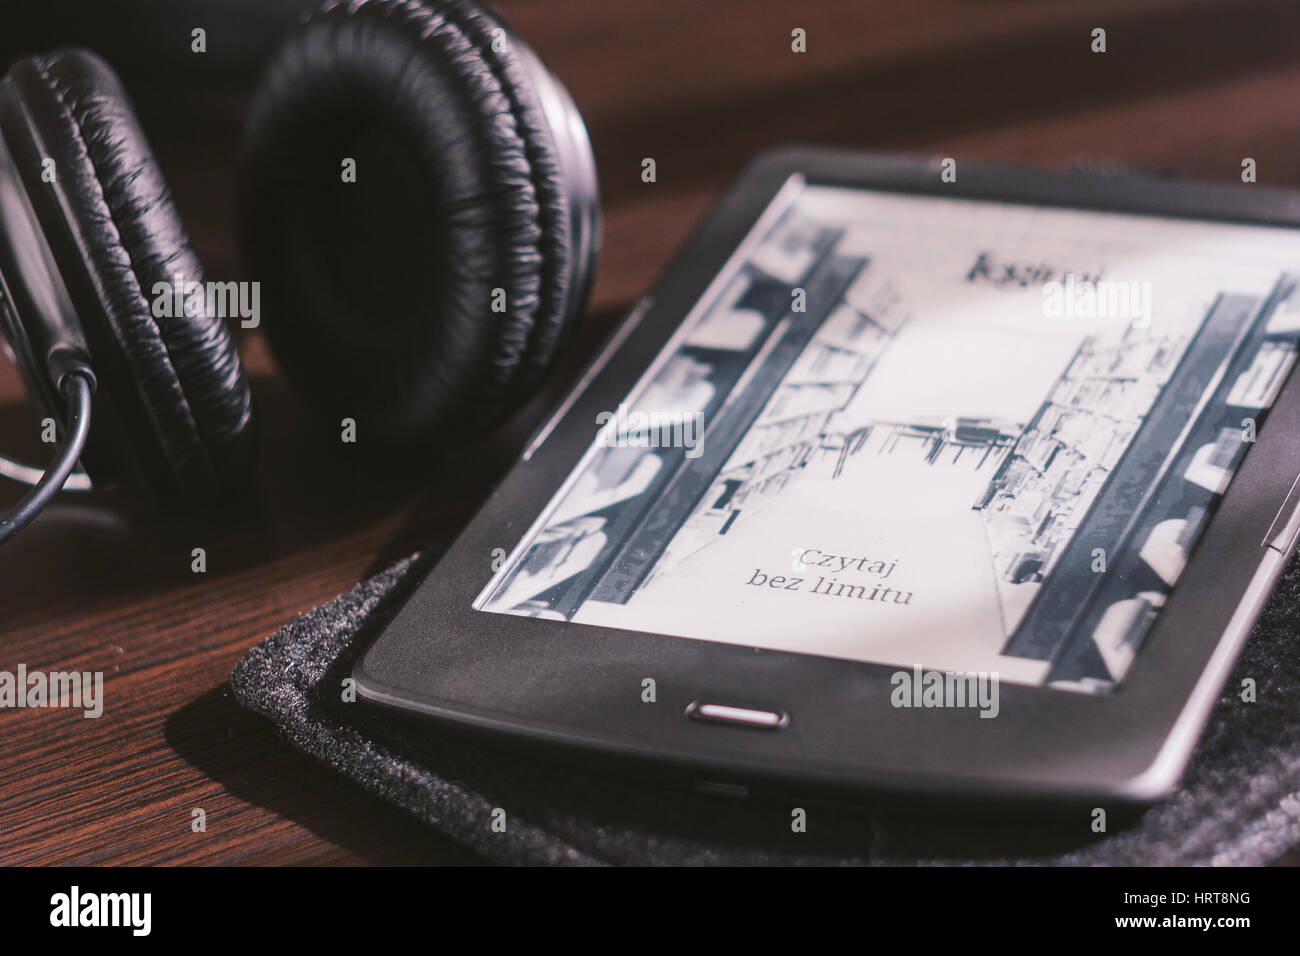 Pair of headphones and open ebook reader on the desk - Stock Image